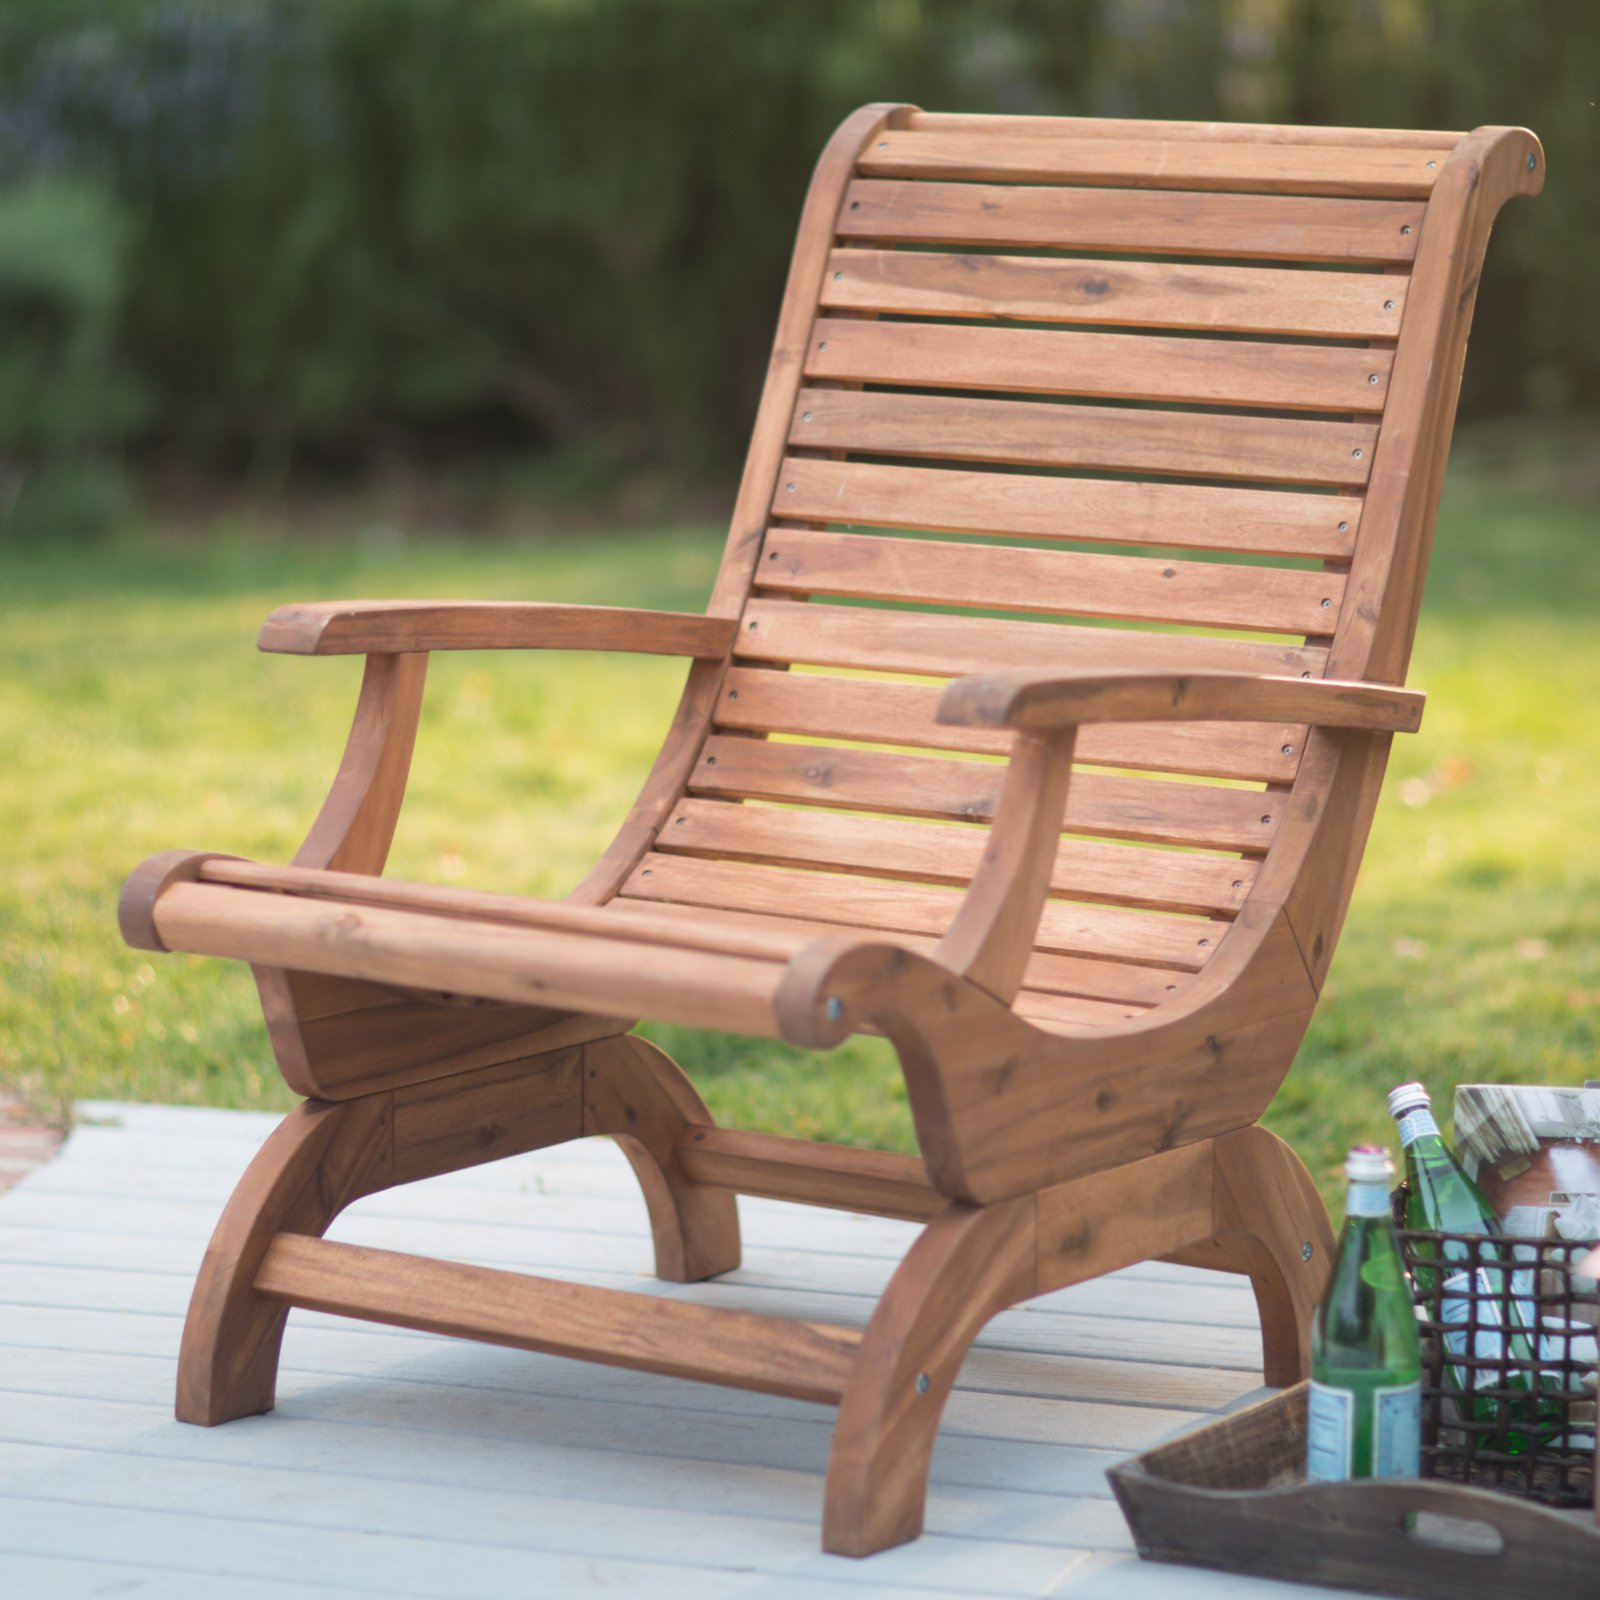 Belham Living Avondale Adirondack Chair Natural by